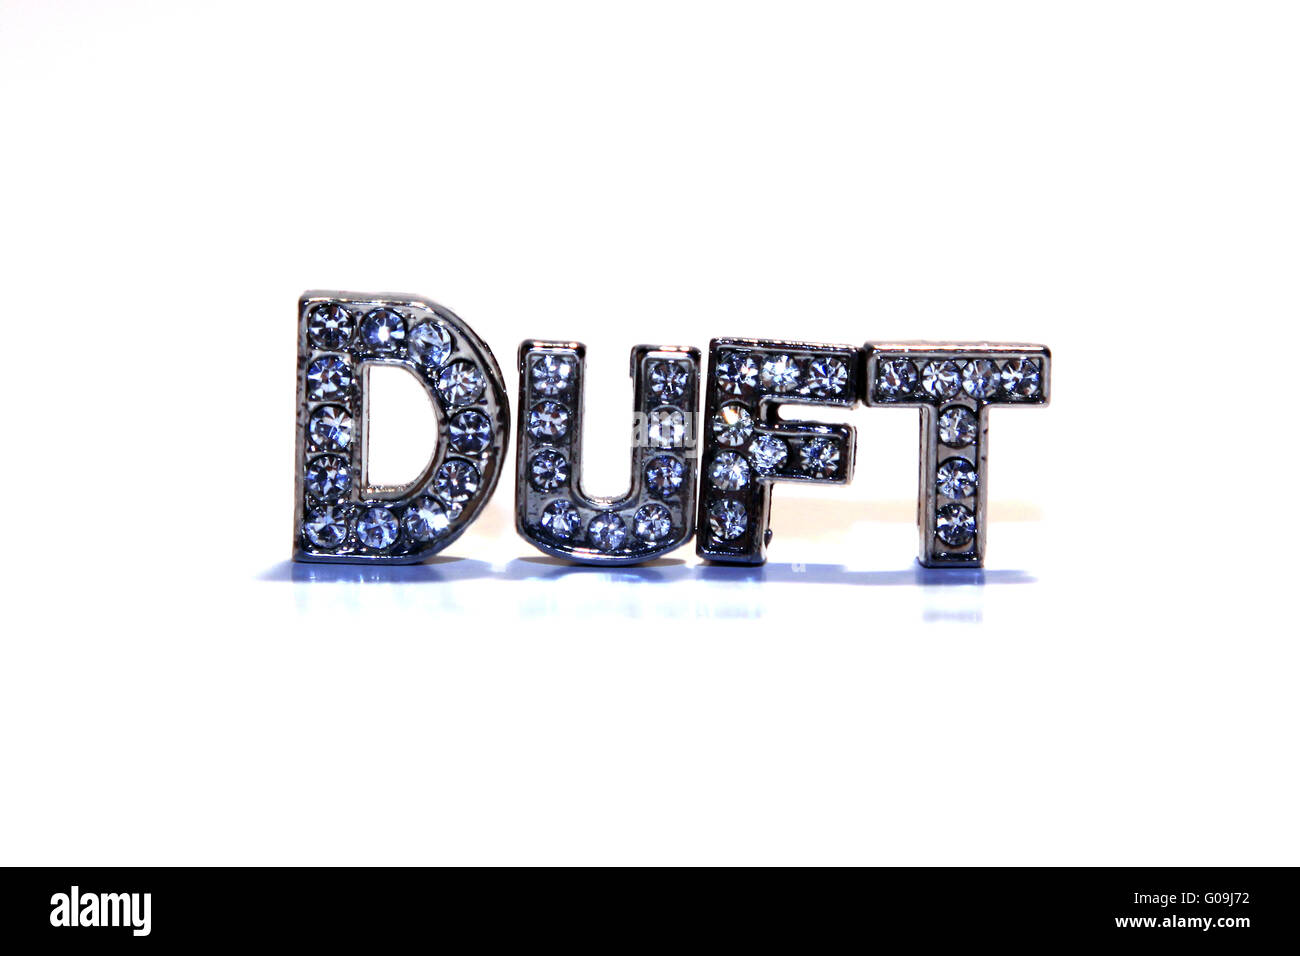 Word DUFT isolated on white background - Stock Image